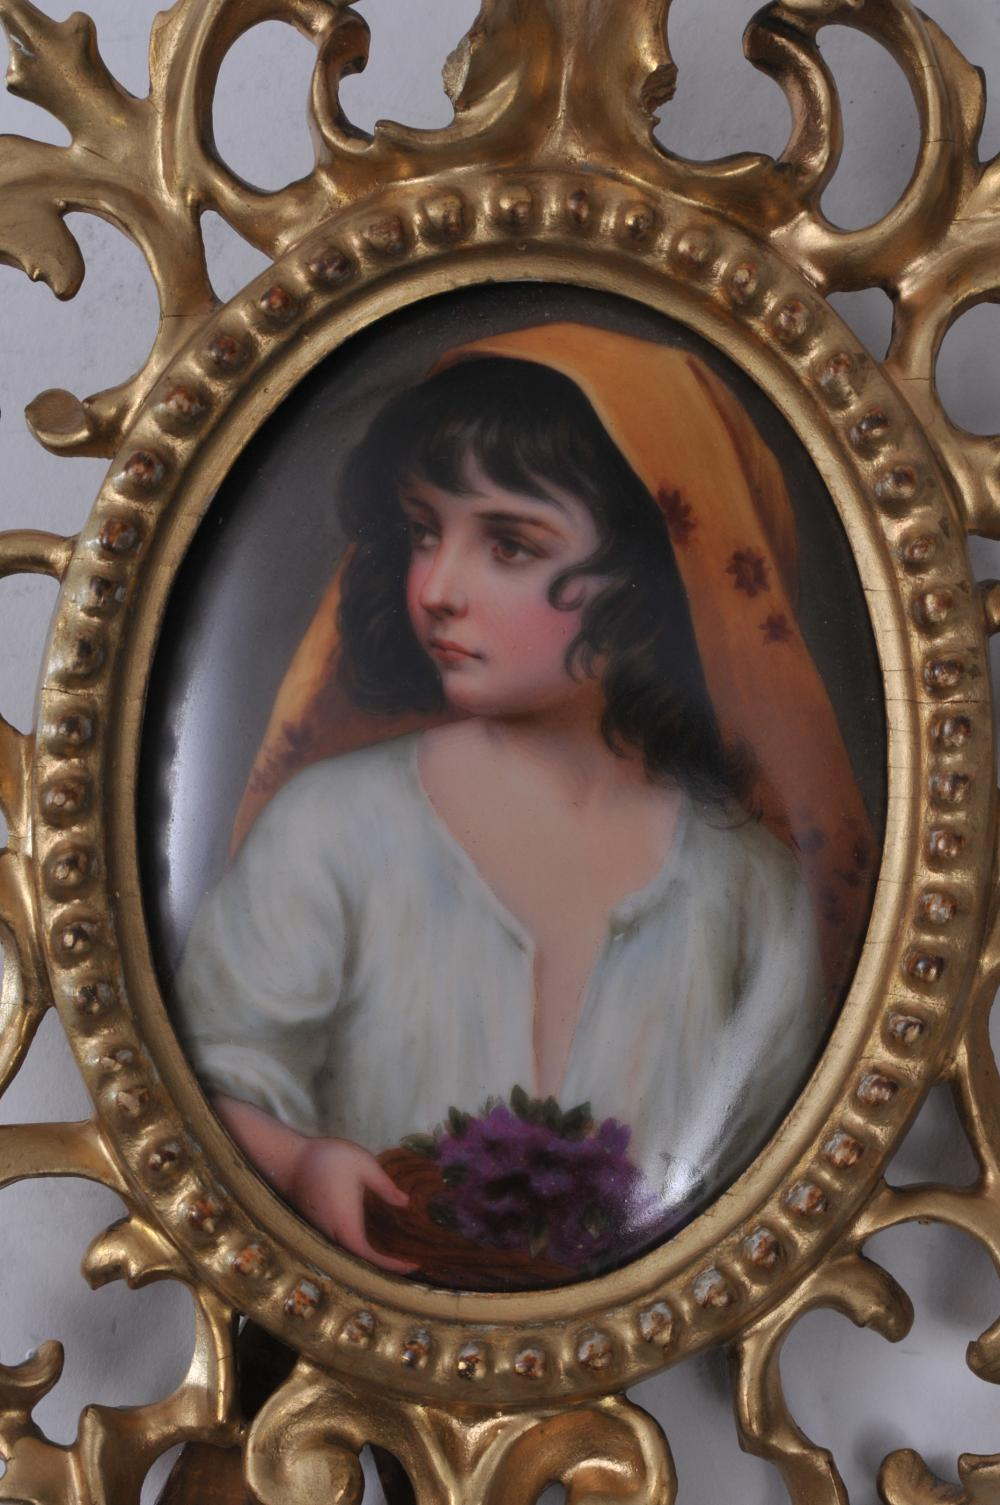 """Lot 90: 19th century Continental painting on porcelain framed plaque. Oval hand painted scene of a young girl holding flowers. Gilt carved wood frame. Touch up to gilt on frame. 10-1/2"""" overall size. Plaque- 4-1/2"""" x 3-1/4""""."""